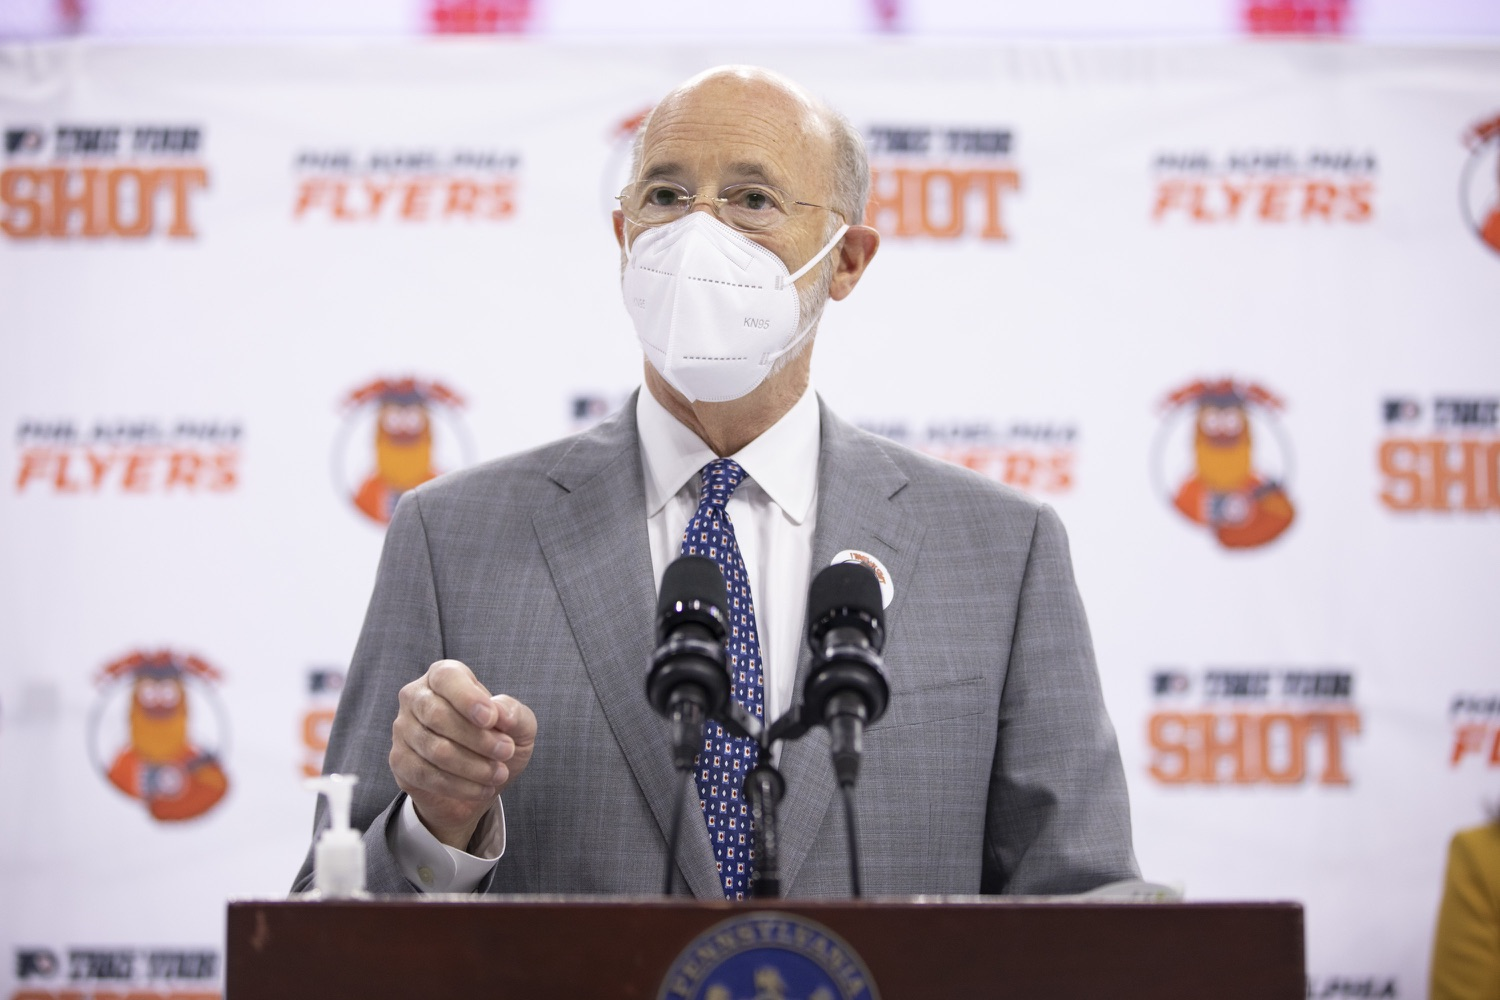 "<a href=""https://filesource.wostreaming.net/commonwealthofpa/photo/18727_gov_vaccines_dz_002.JPG"" target=""_blank"">⇣ Download Photo<br></a>Pennsylvania Governor Tom Wolf speaking with the press.   Governor Tom Wolf today visited the Philadelphia Flyers organization at the Wells Fargo Center in Philadelphia to discuss COVID-19 vaccine efforts in Pennsylvania. The Flyers recently launched a comprehensive COVID-19 vaccine campaign, Take Your Shot, encouraging Pennsylvanians to get vaccinated.  Philadelphia, PA  MAY 3, 2021"